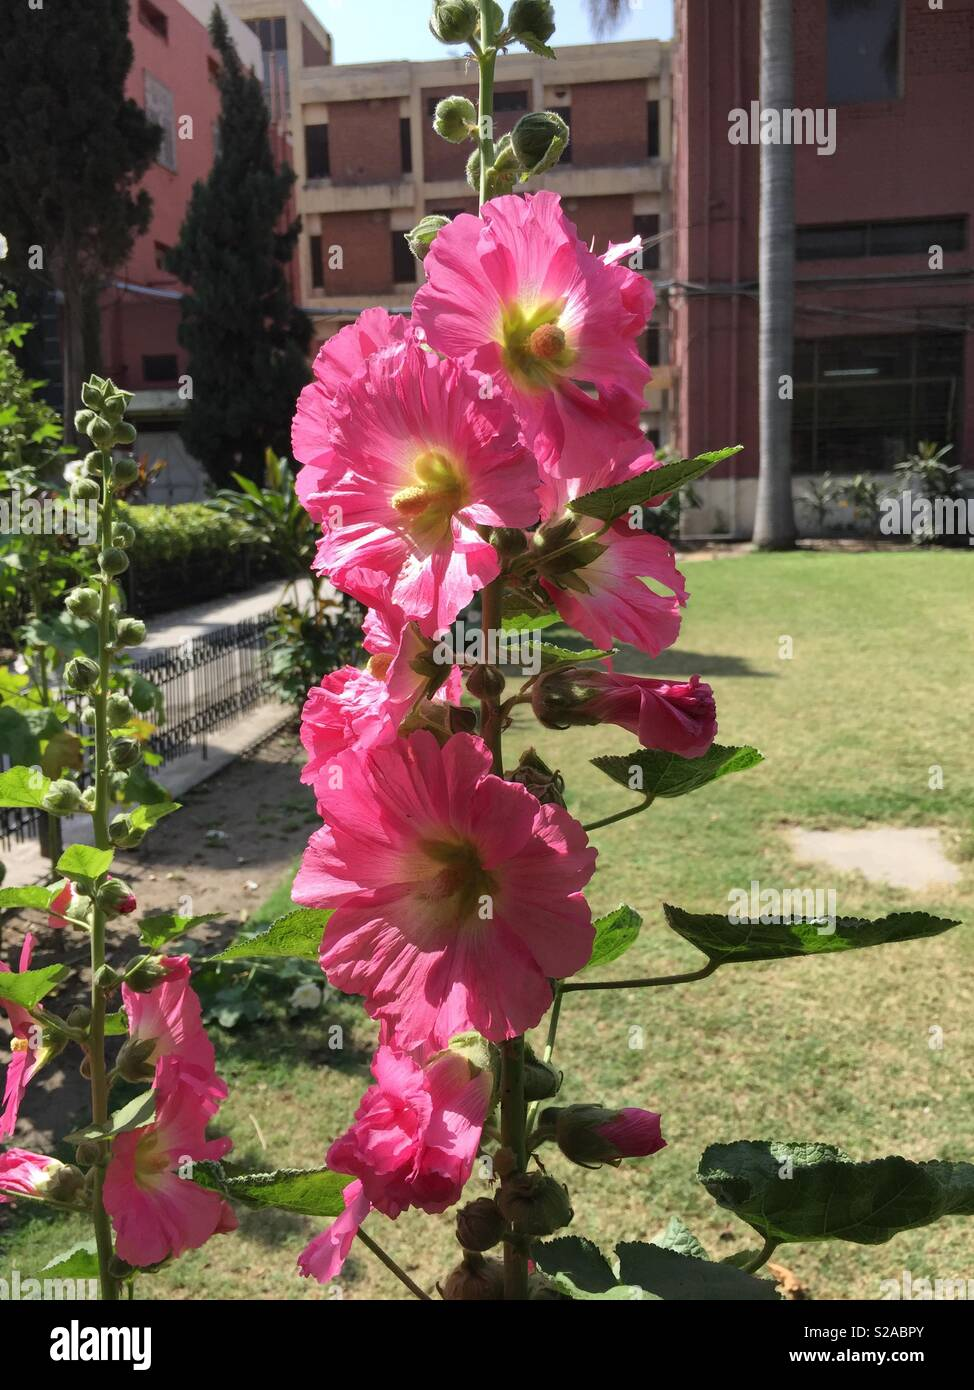 Tall pink flower plant with lawn in the background stock photo tall pink flower plant with lawn in the background mightylinksfo